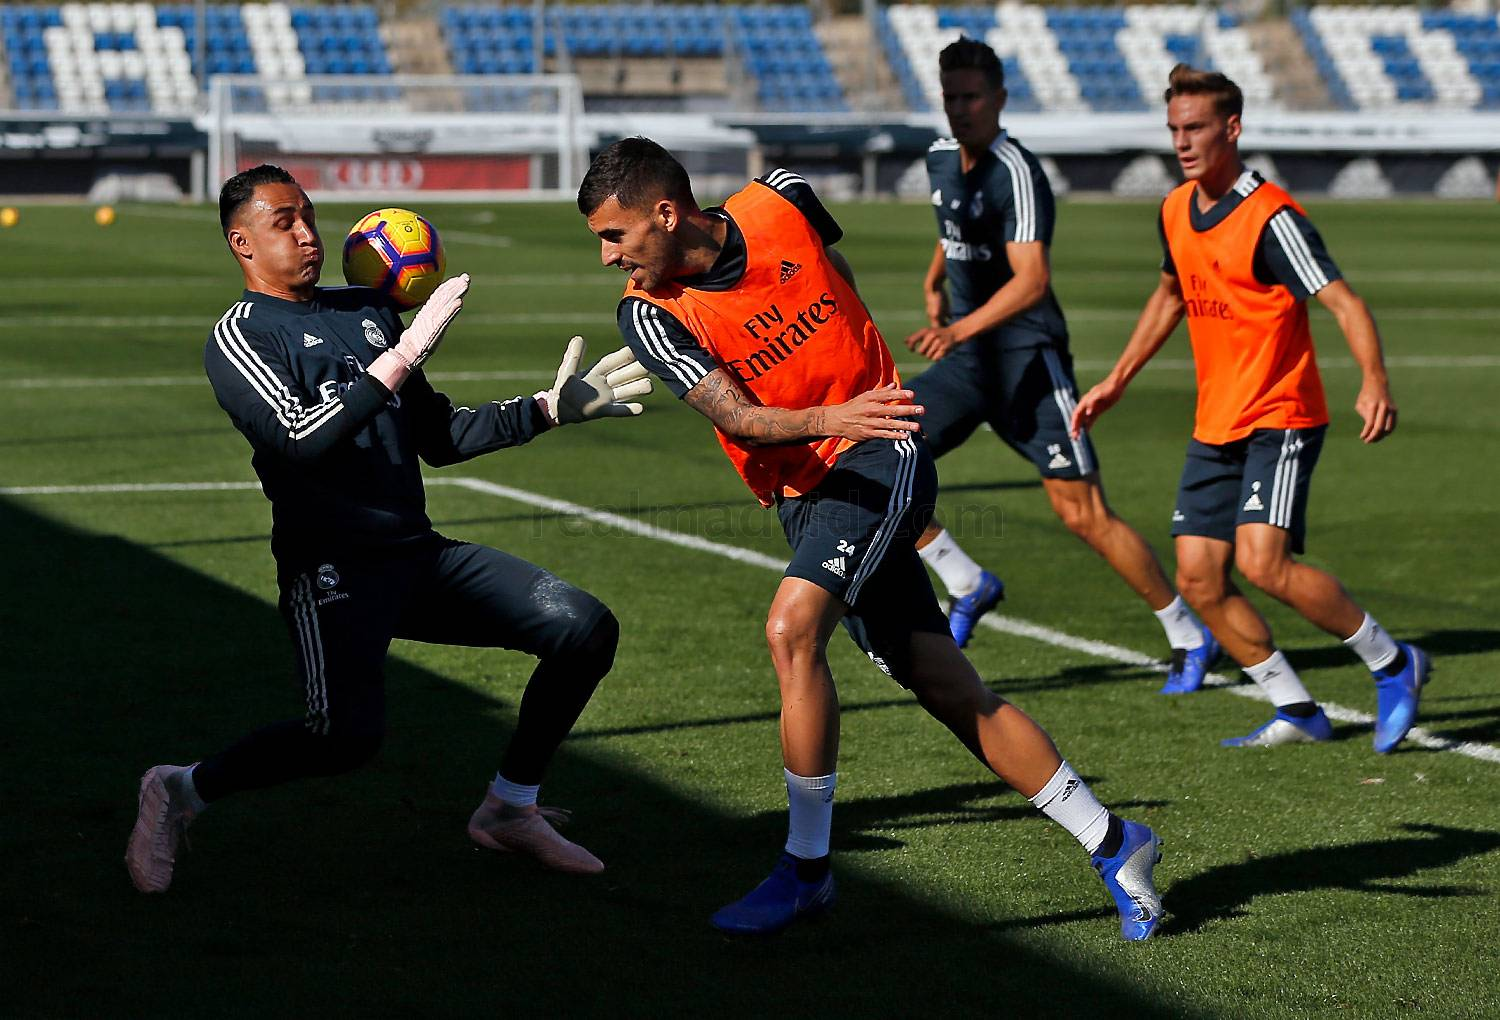 Real Madrid - Entrenamiento del Real Madrid - 25-10-2018